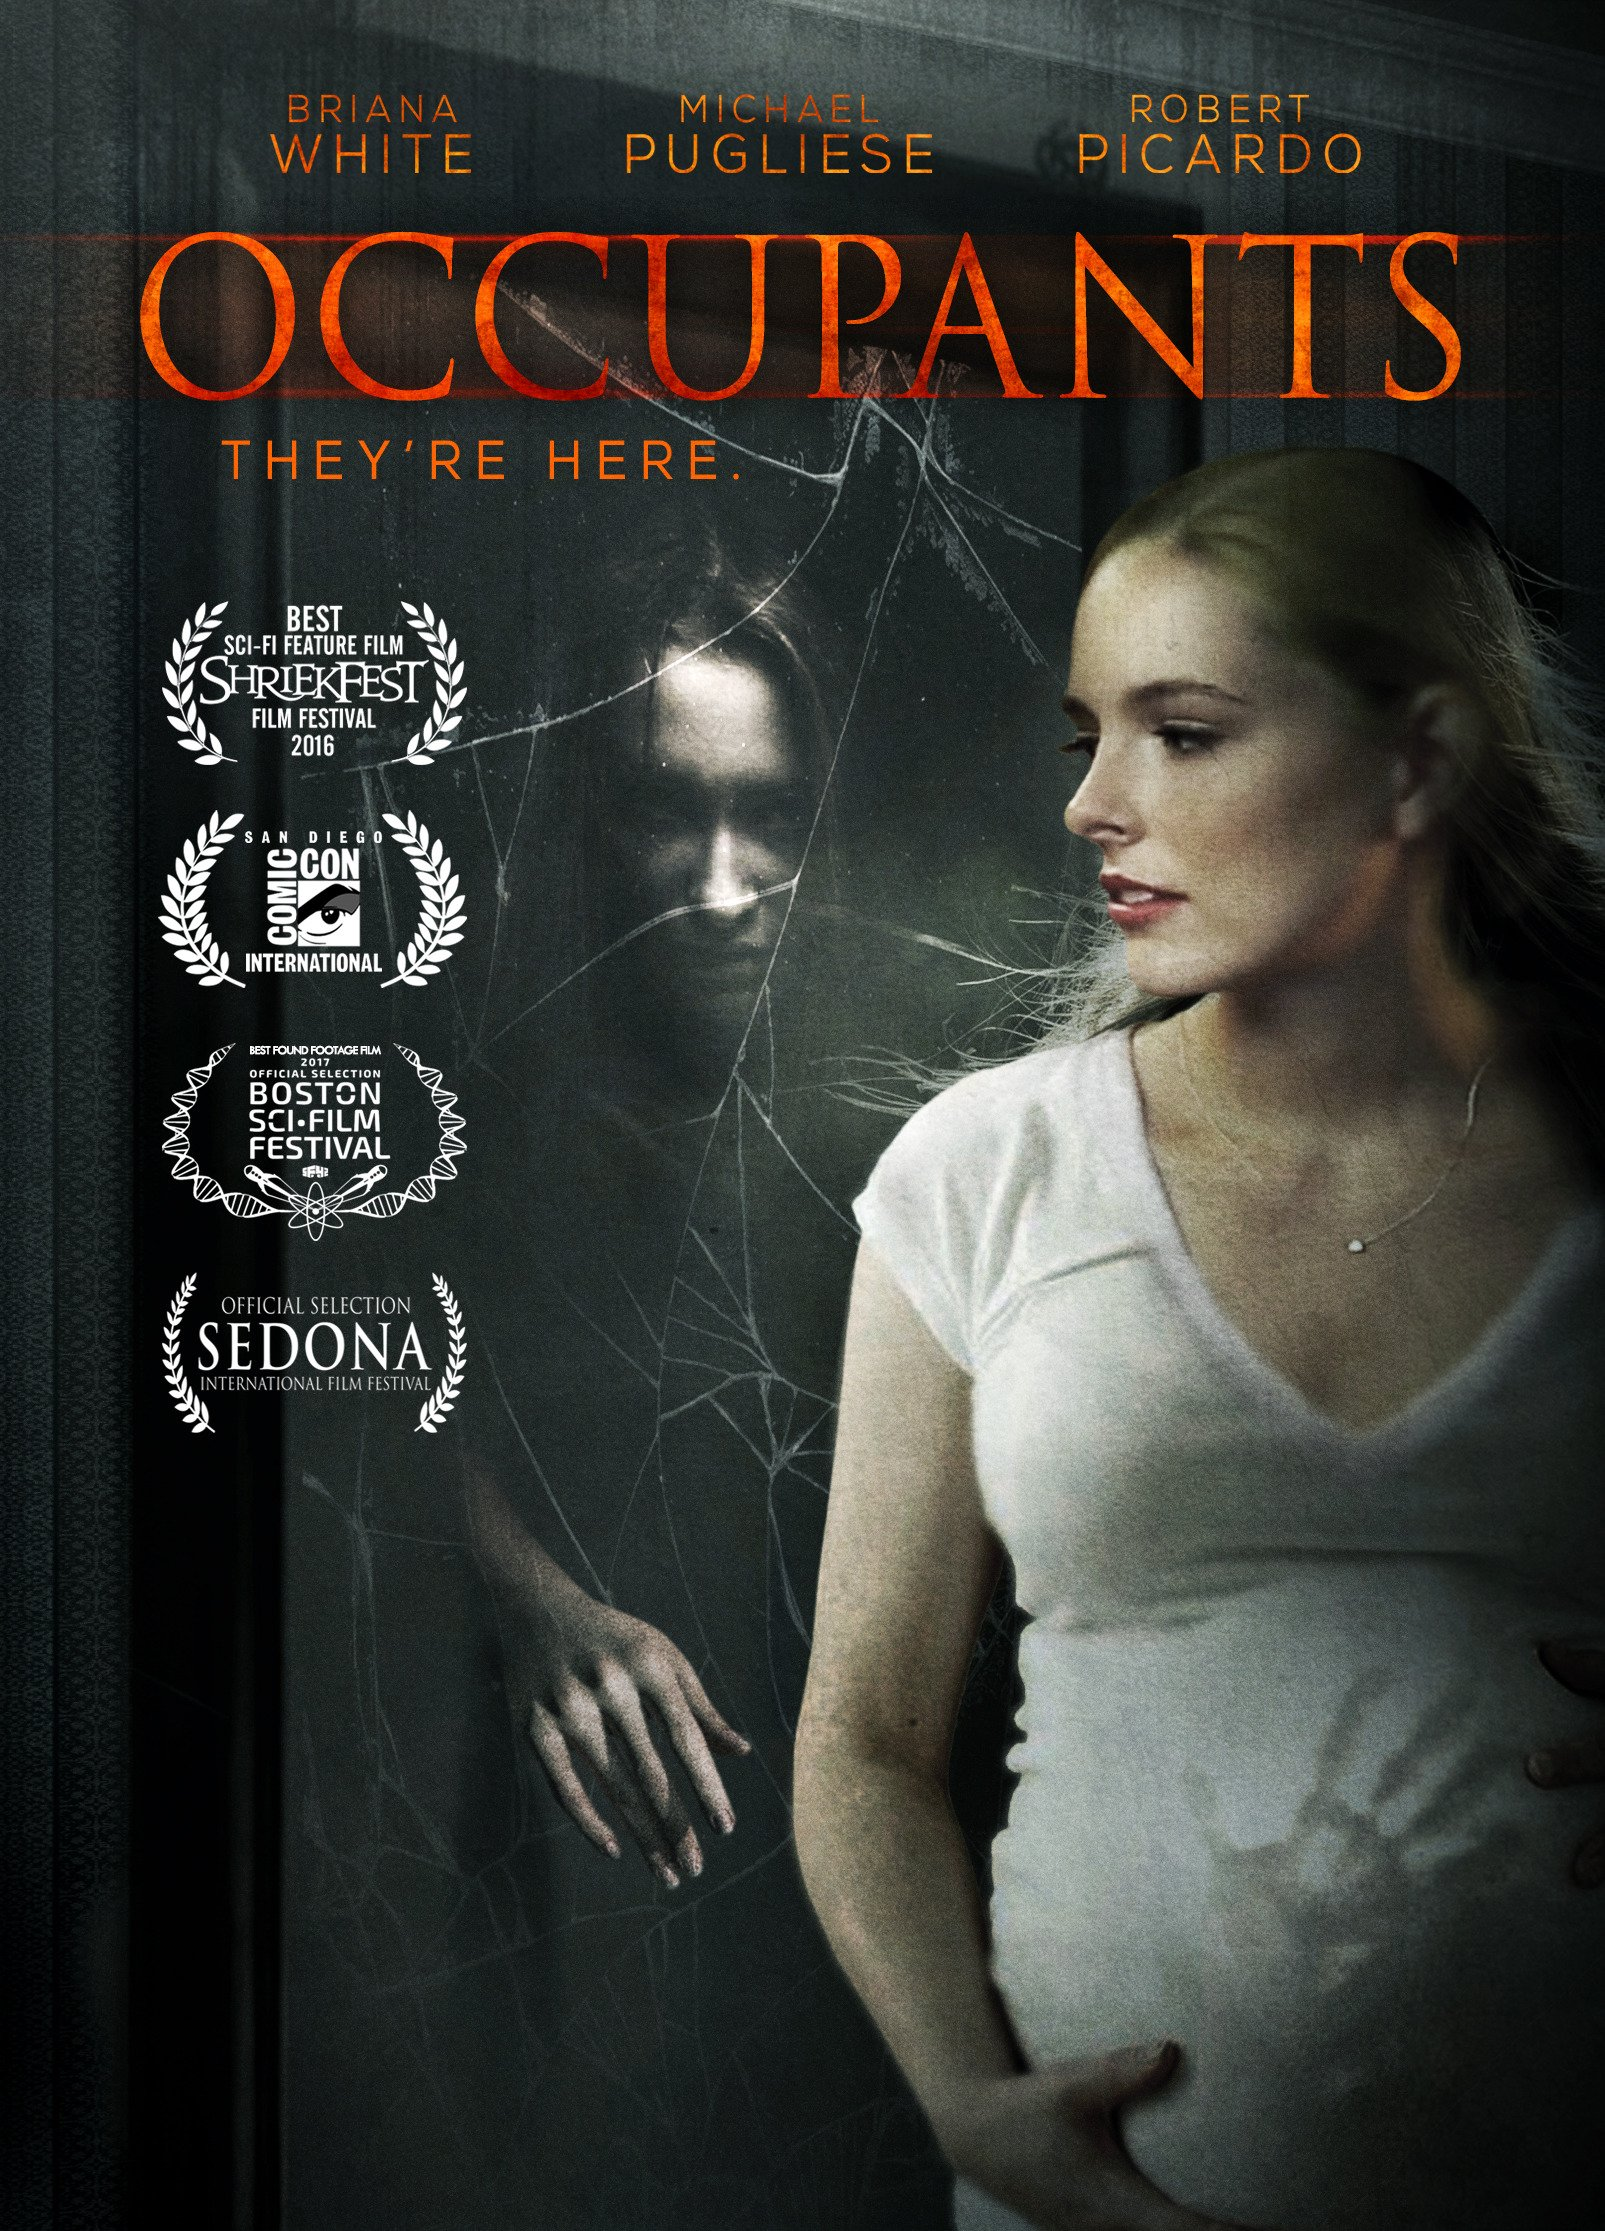 Occupants